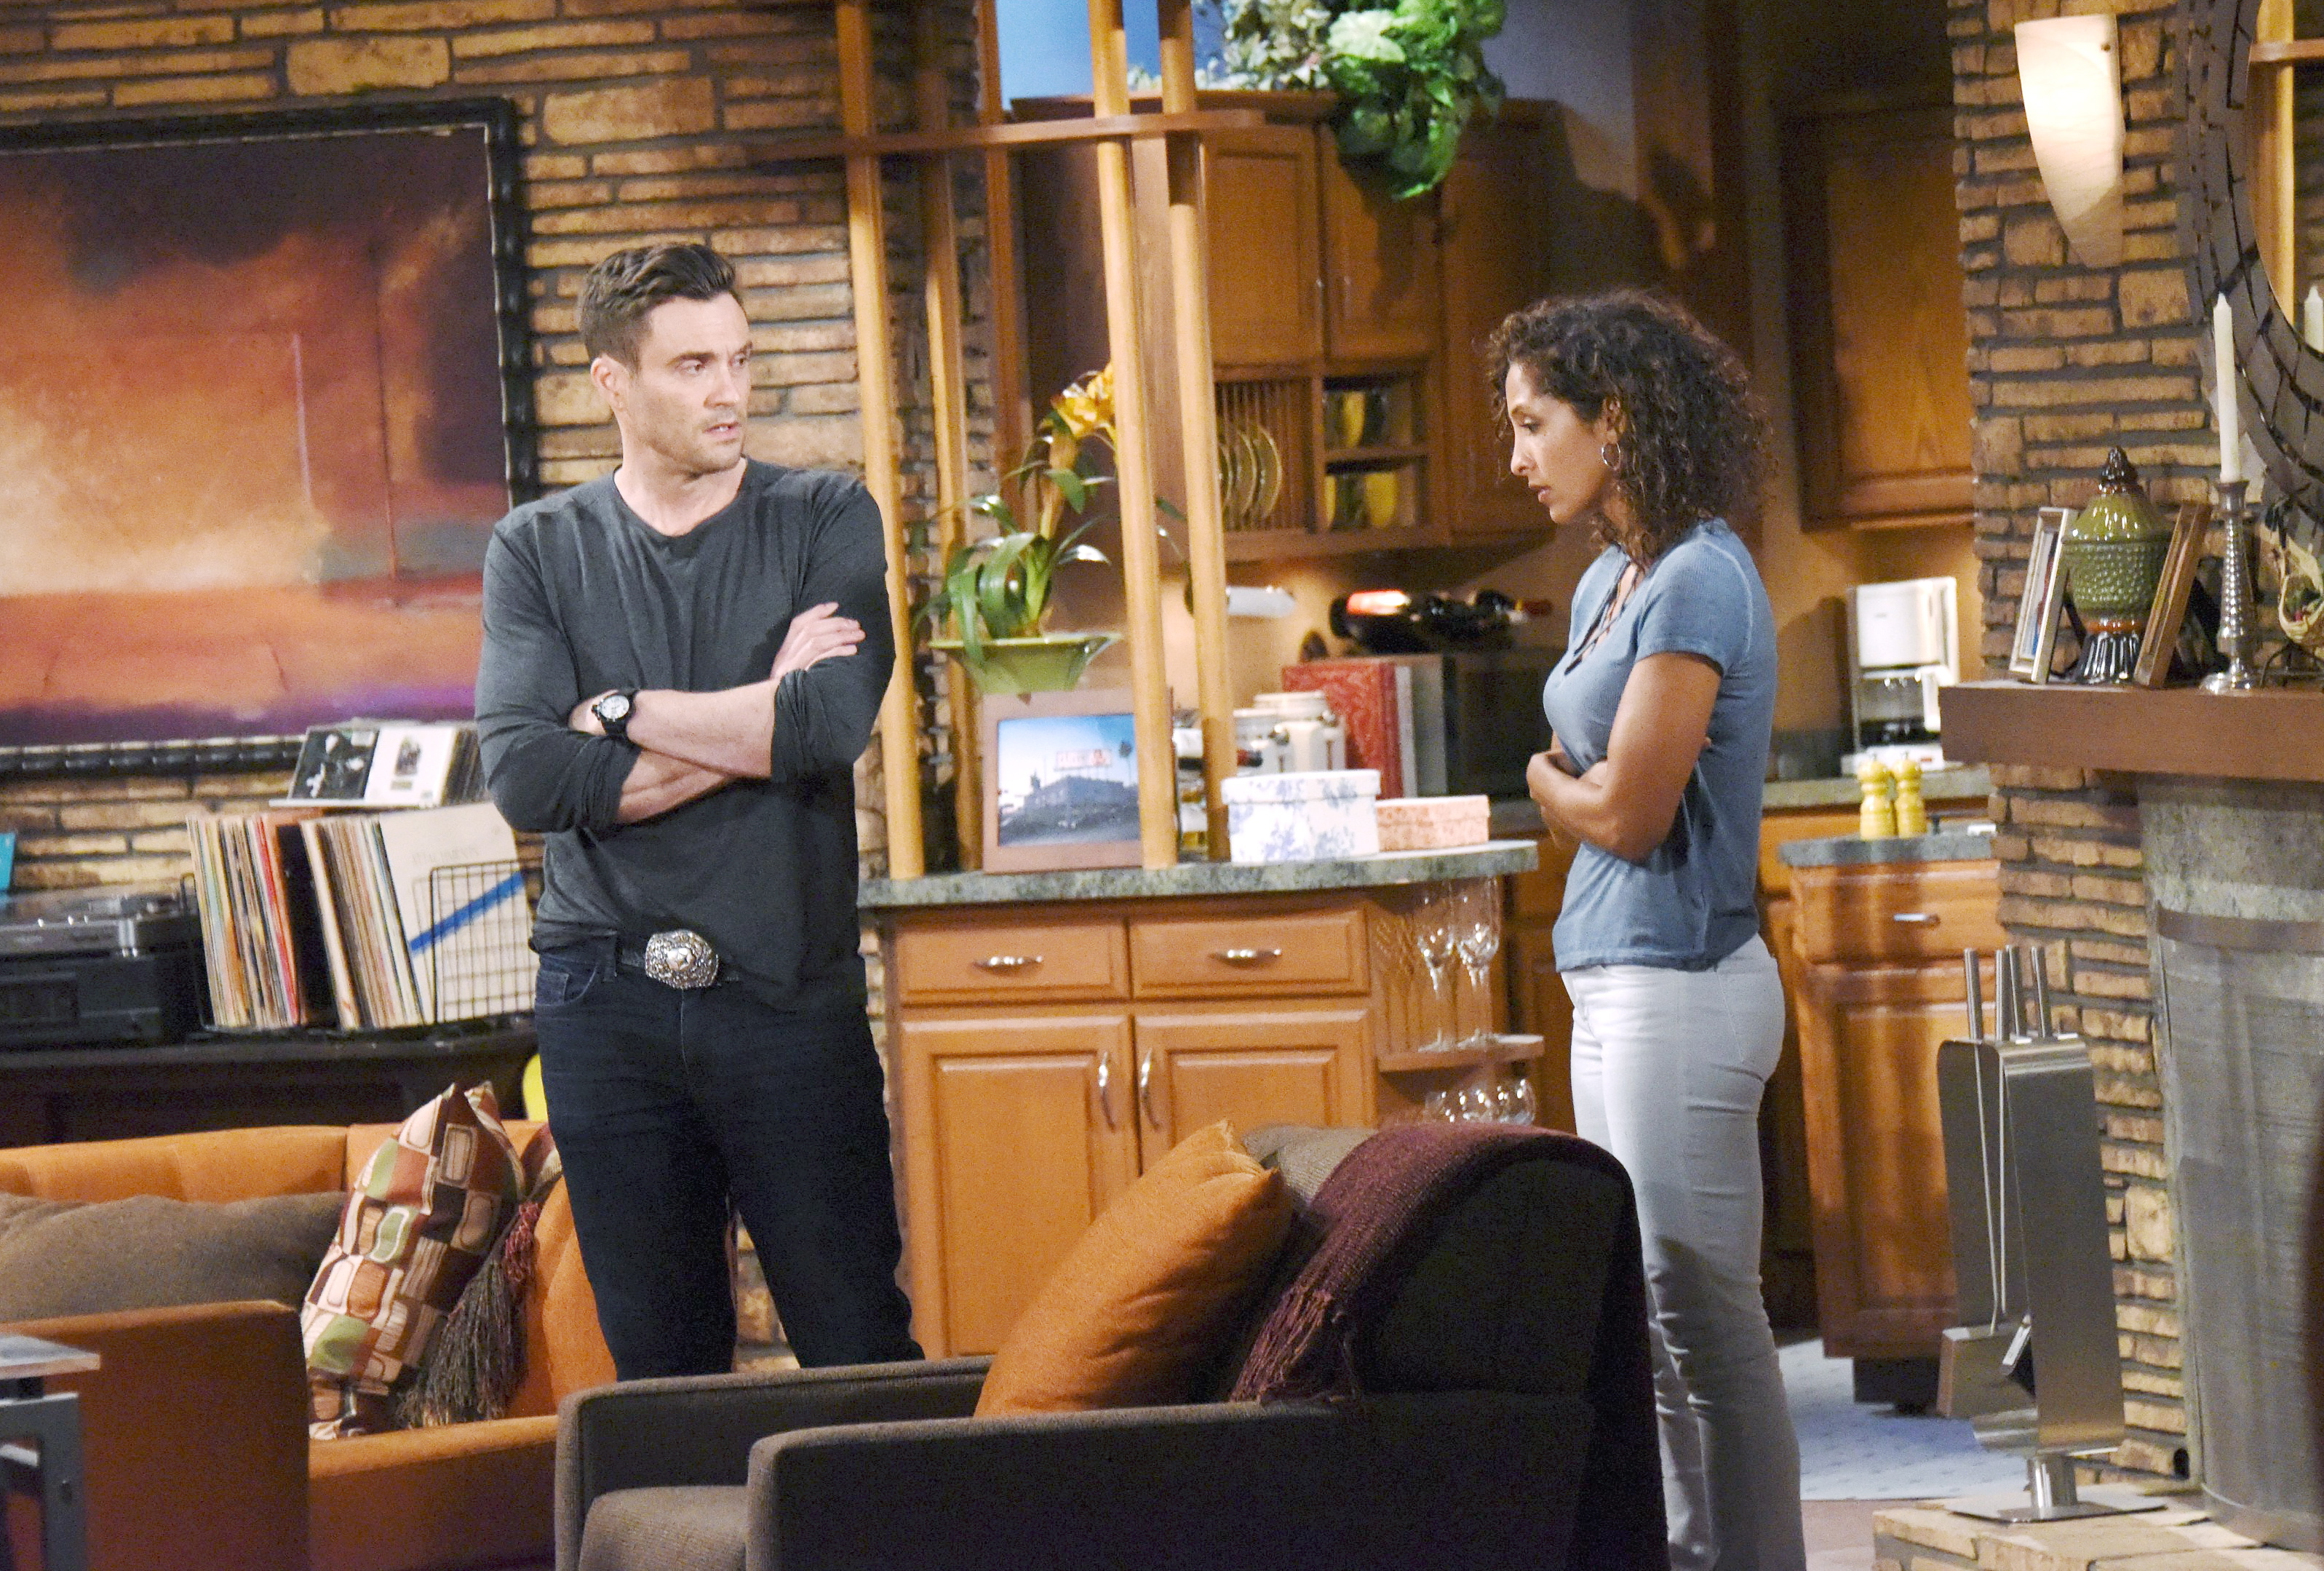 Cane interrupts a warm moment between Lily and Jordan on The Young and the Restless